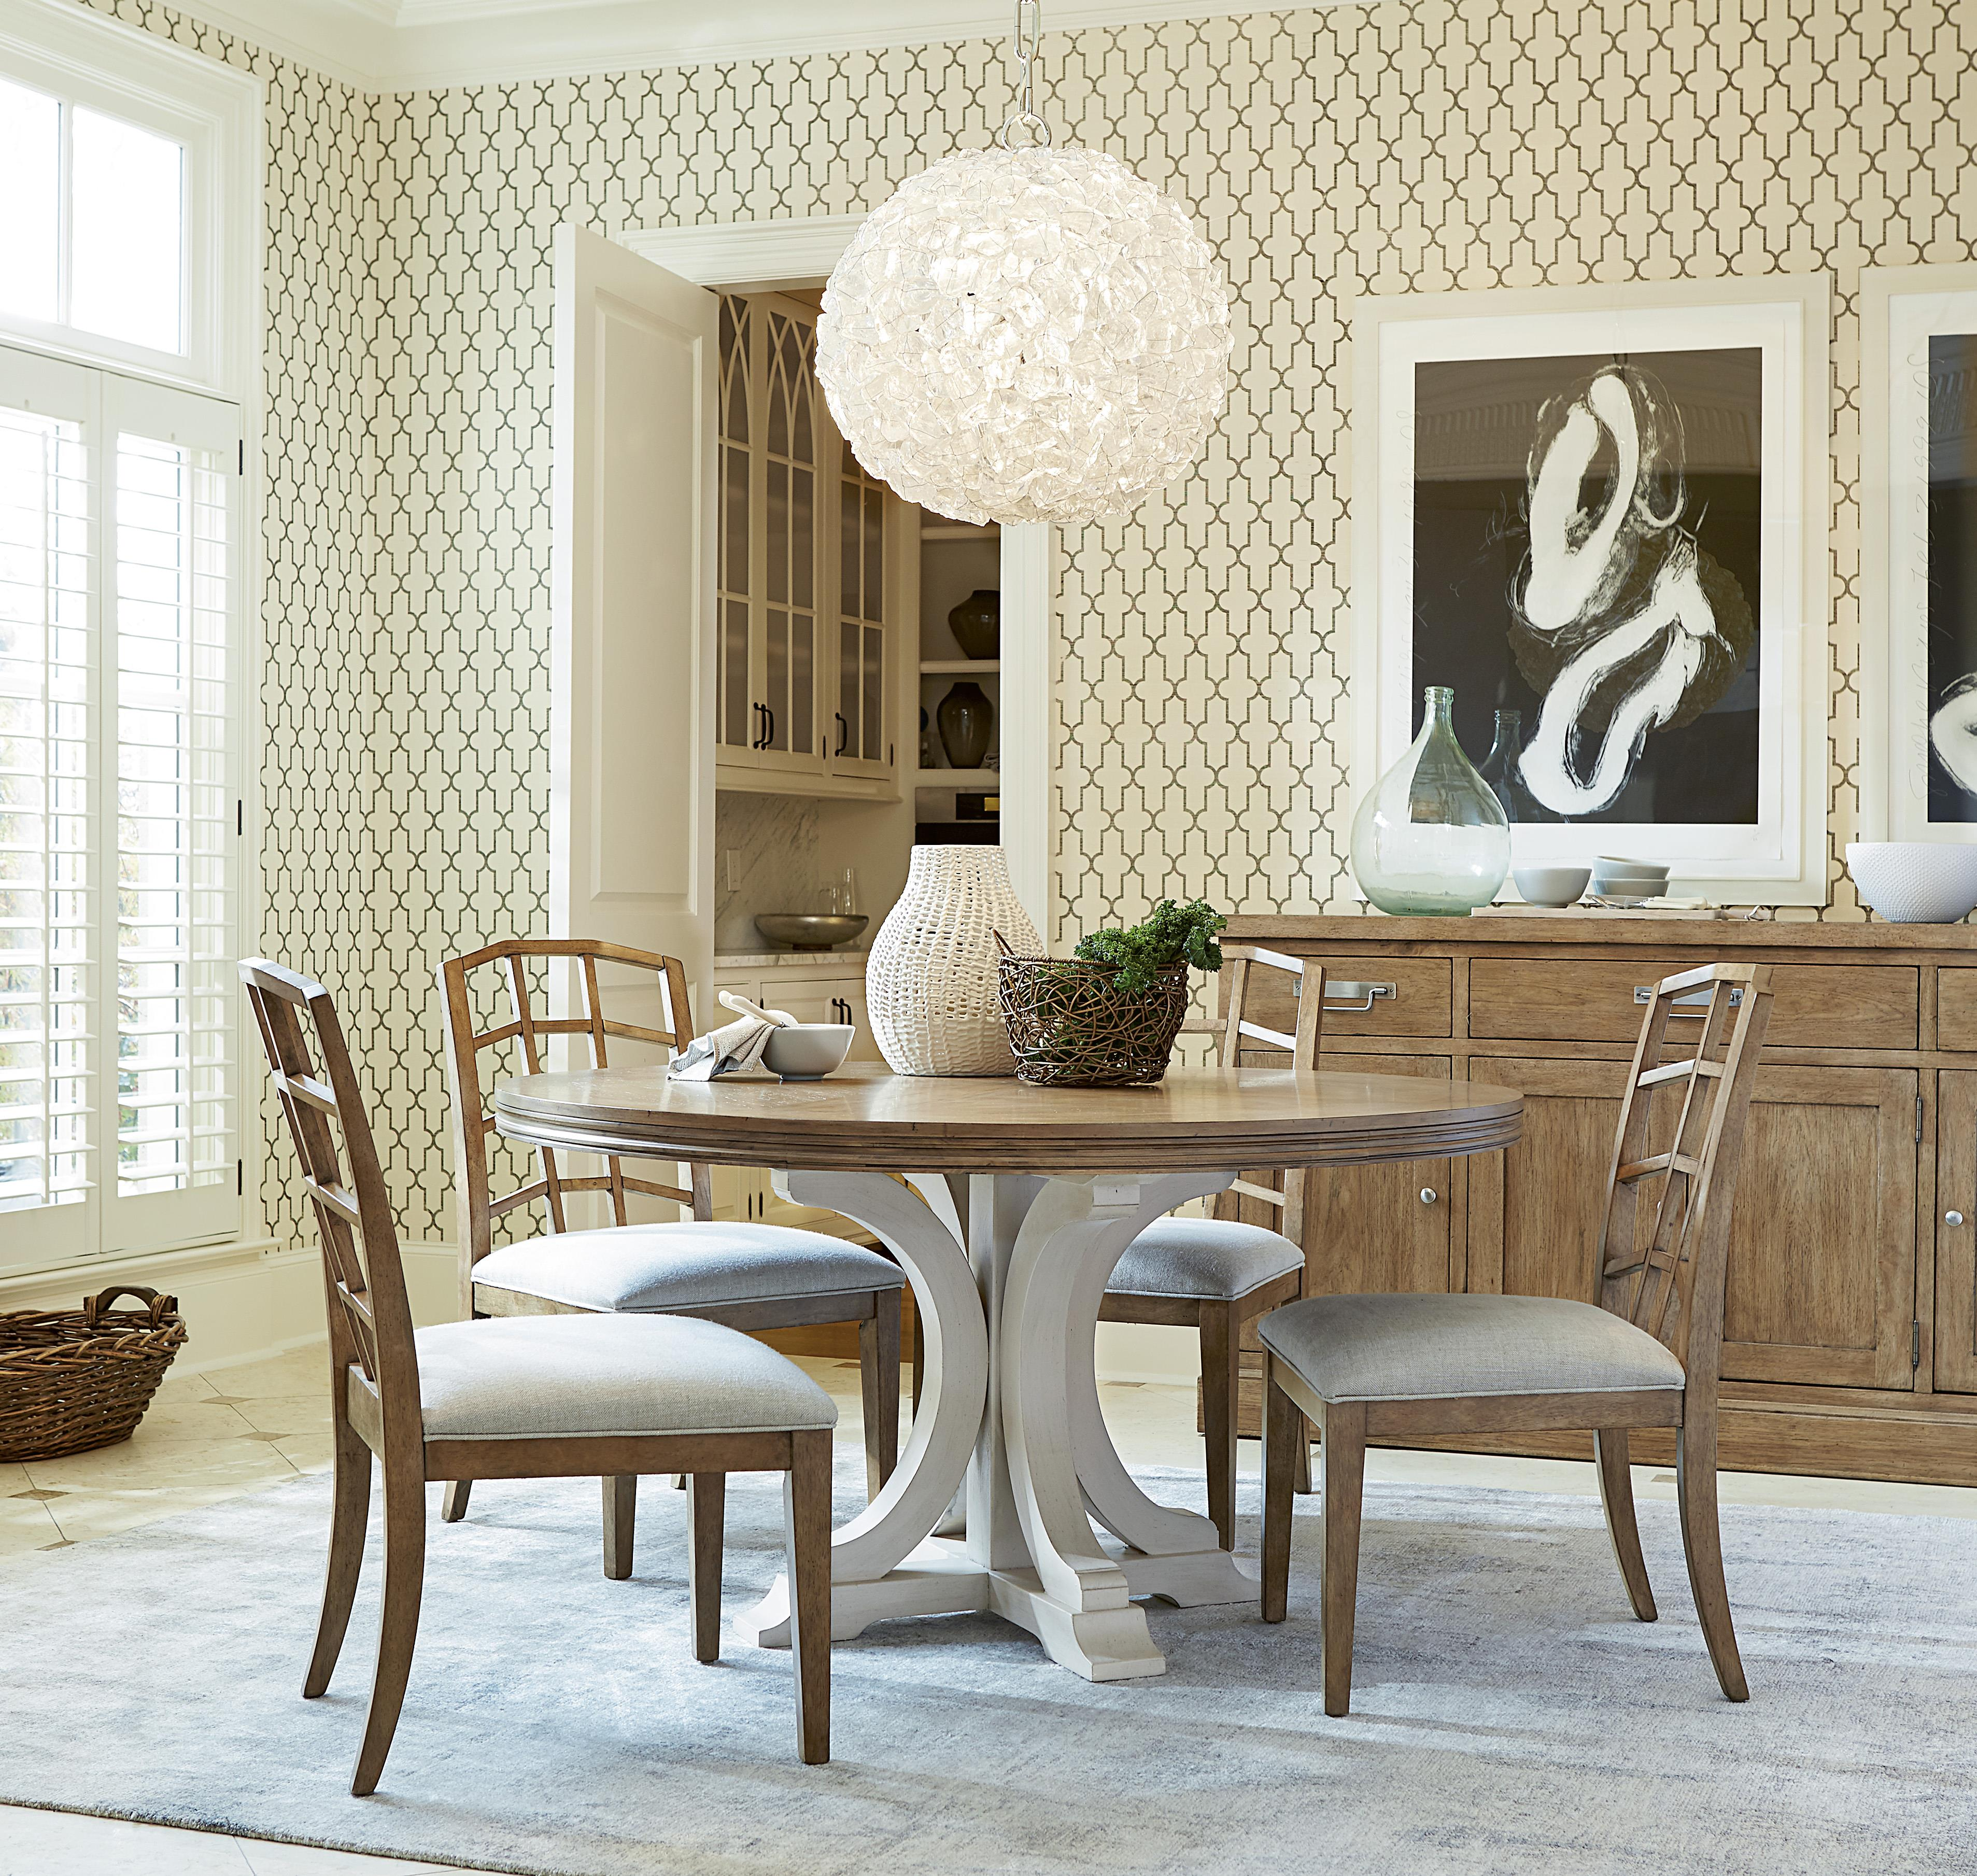 Universal Moderne Muse Casual Dining Room Group - Item Number: 414 Dining Room Group 2